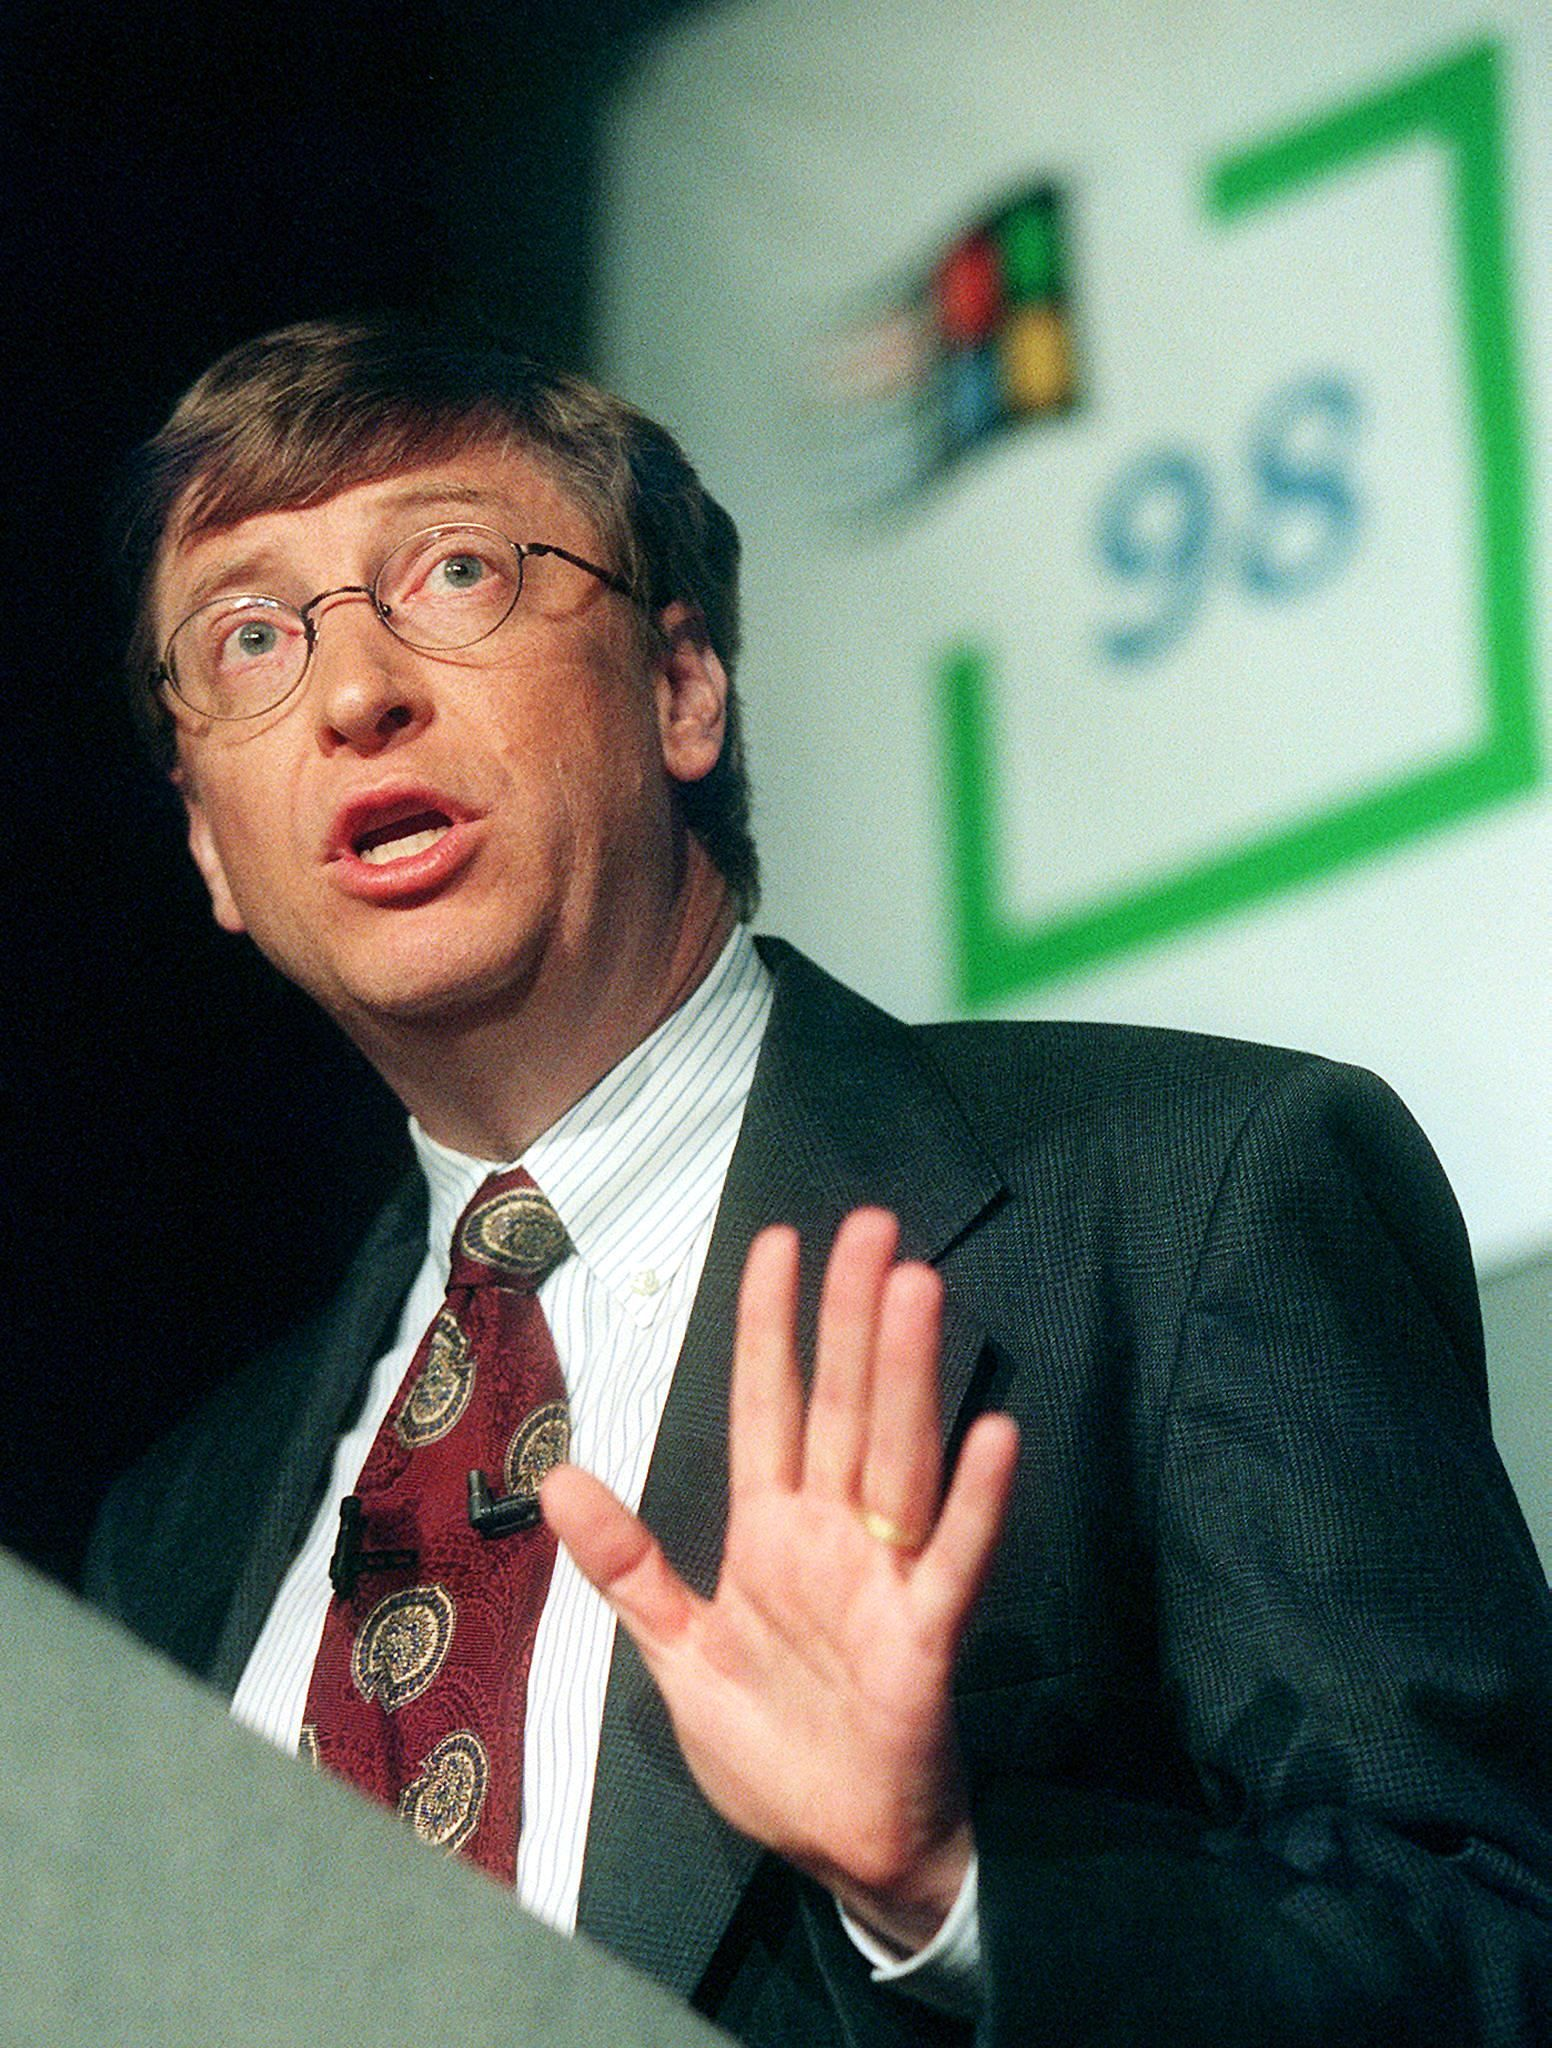 A younger Gates speaks at a platform with the Windows 98 logo behind him